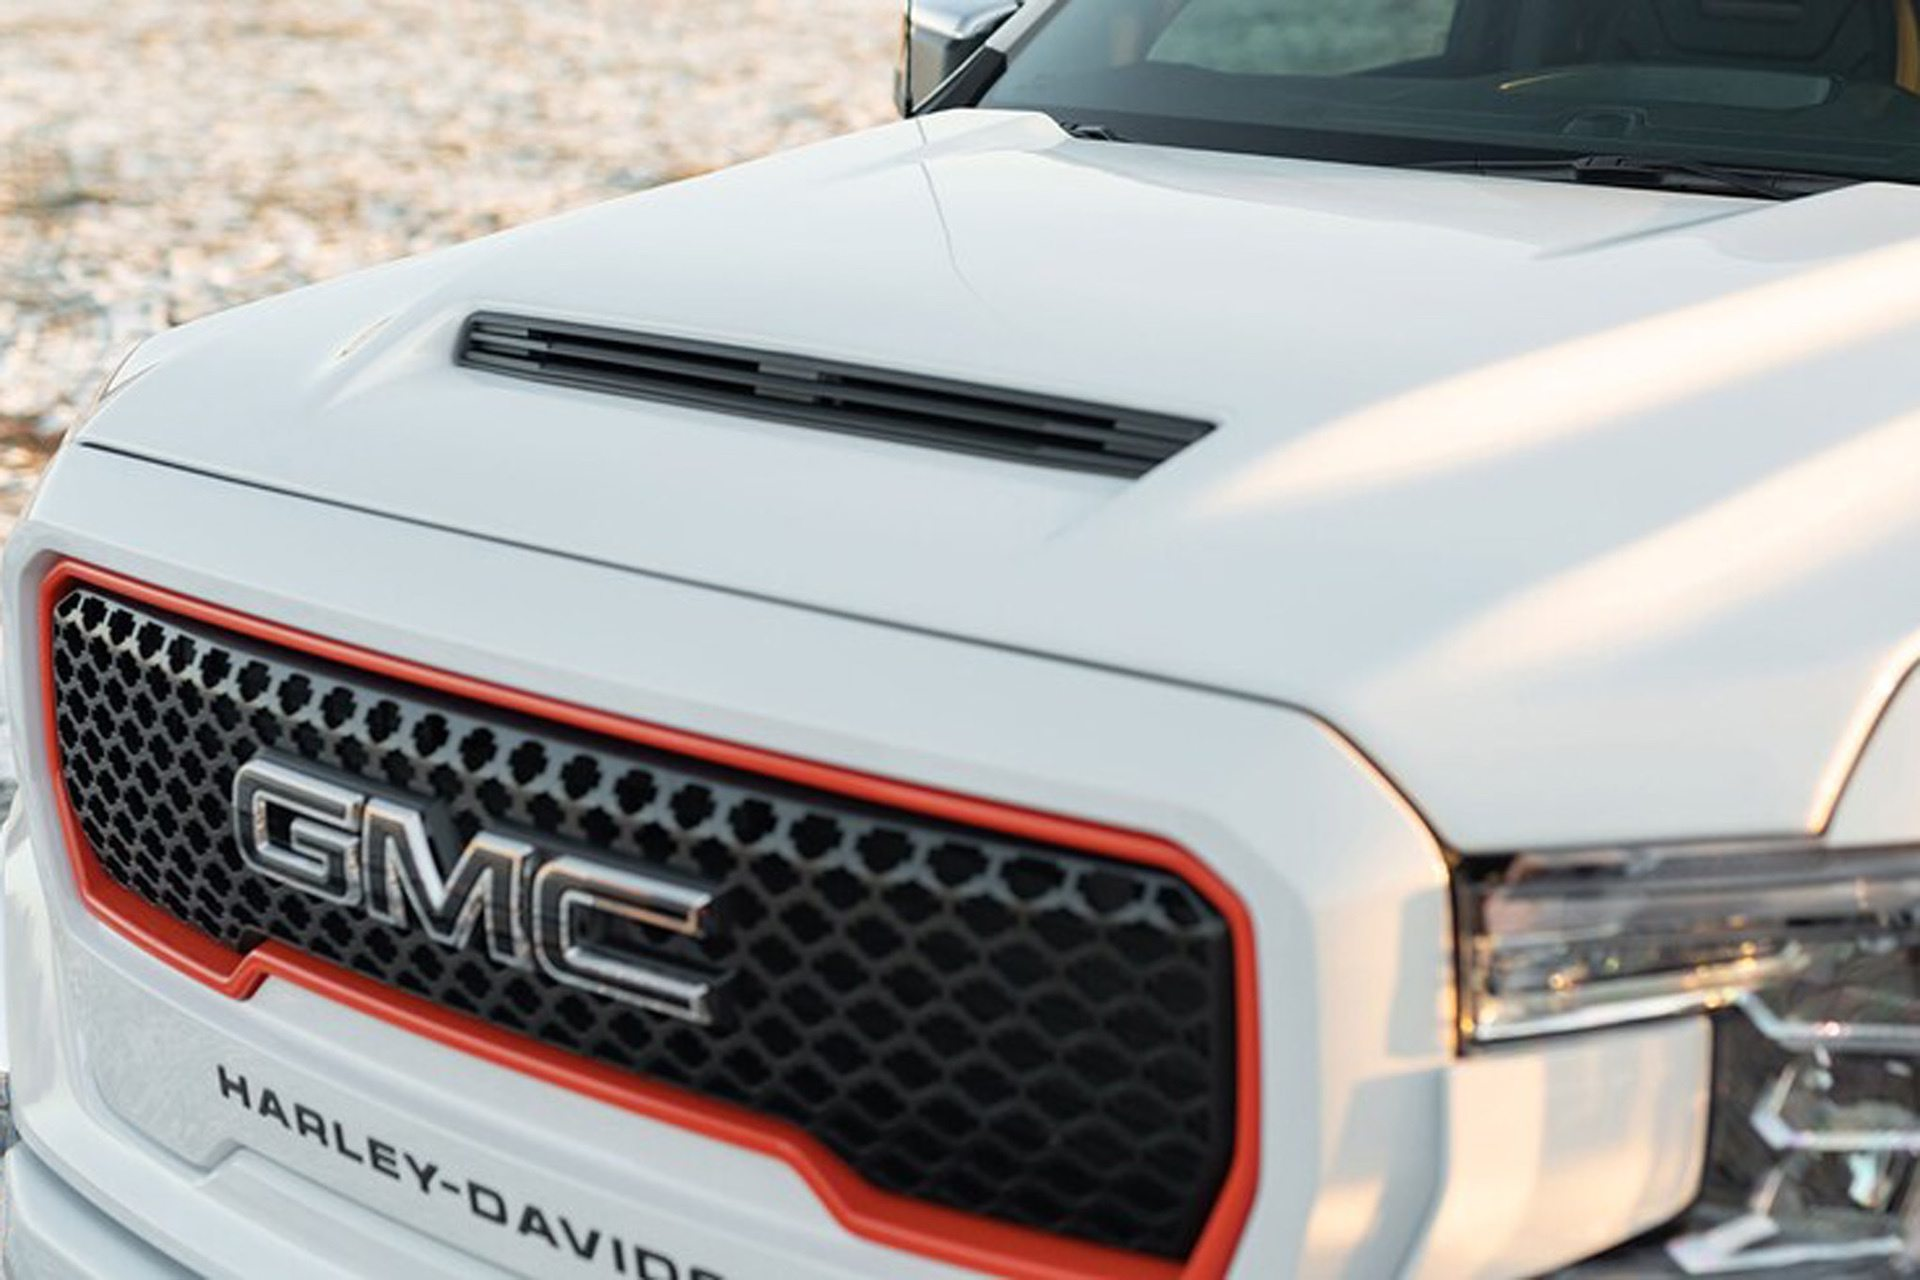 2020-GMC-Sierra-1500-Harley-Davidson-Edition-Tuscany-Automotive_0008